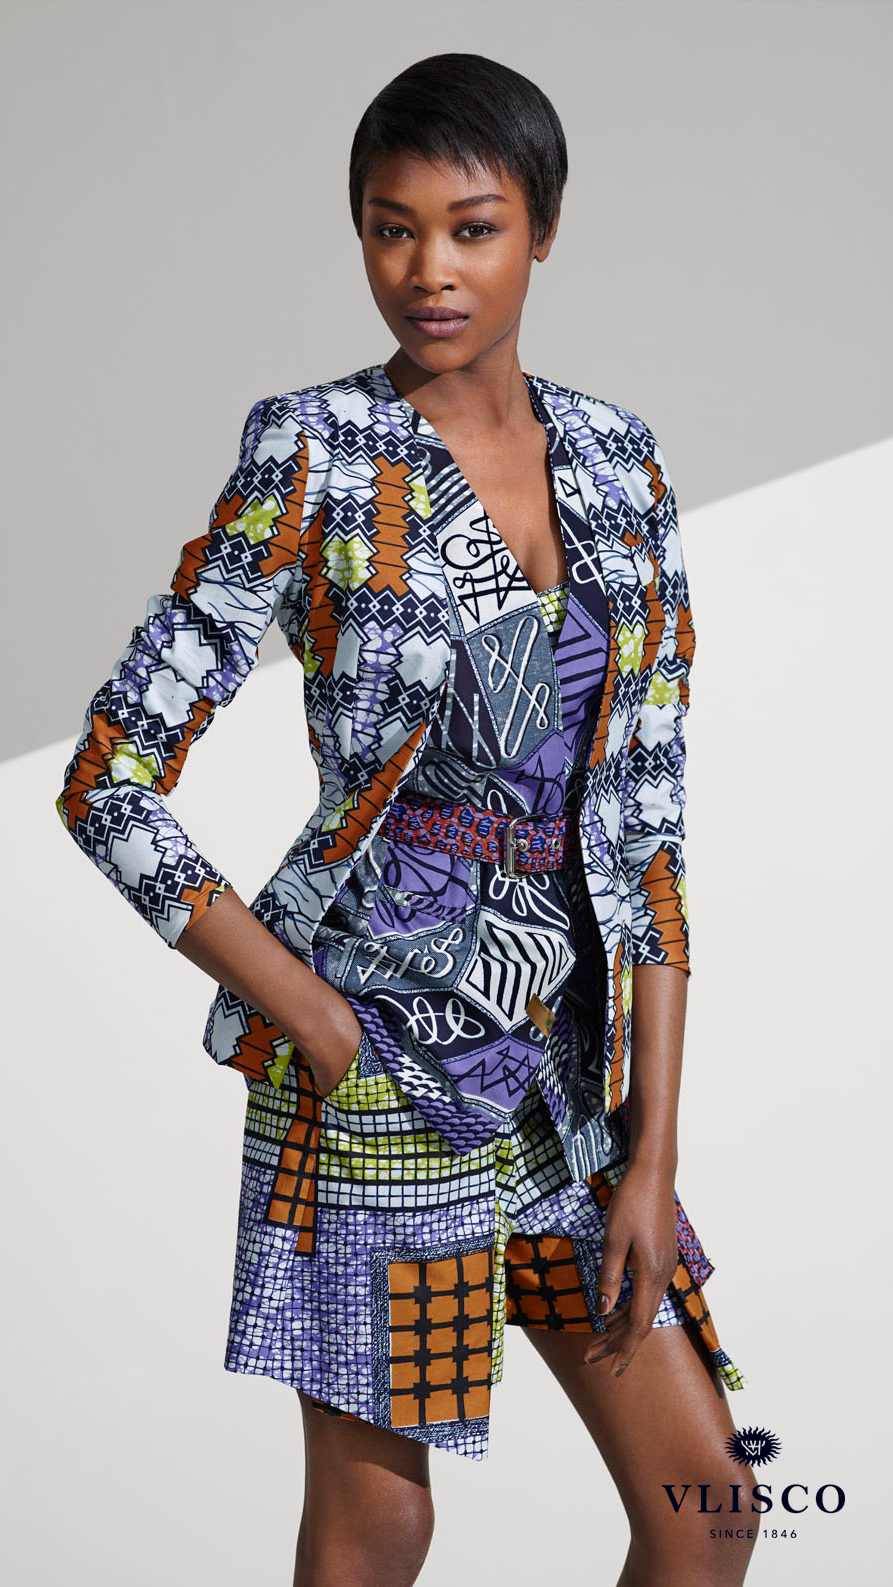 RELAXED YET DRAMATIC | This style is the perfect every day wear as it's relaxed yet dramatic. So whether you're shopping with friends or heading to a pick nick, be inspired to define your powerful Vlisco look. | #vlisco #thetrueoriginal #dutchwax #waxhollandais #waxhollandis #ankara #ankarastyle #africanprint #africanprintfashion #africanfashion #fashion #fashionlook #fashionlooks #shorts #jacket #blazer #belt